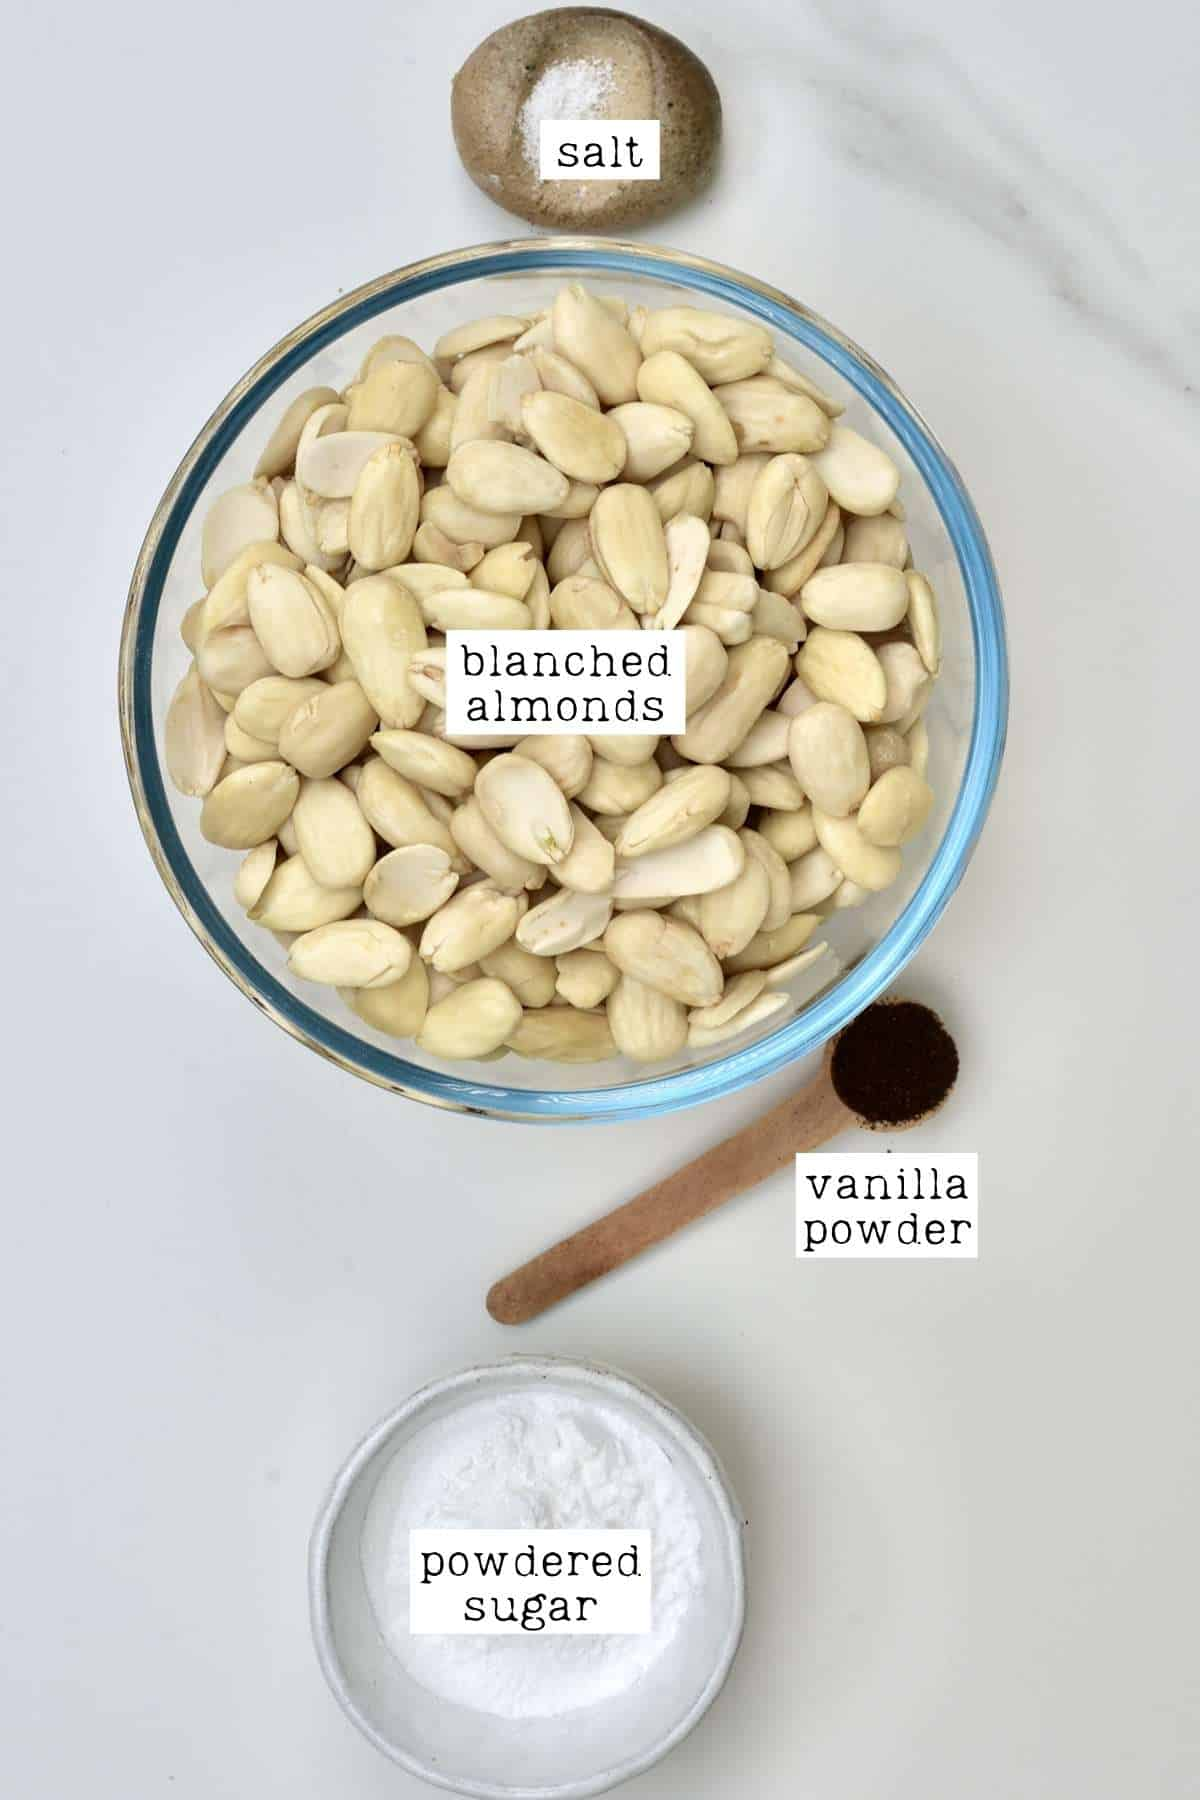 Ingredients for Sweet Almond Paste